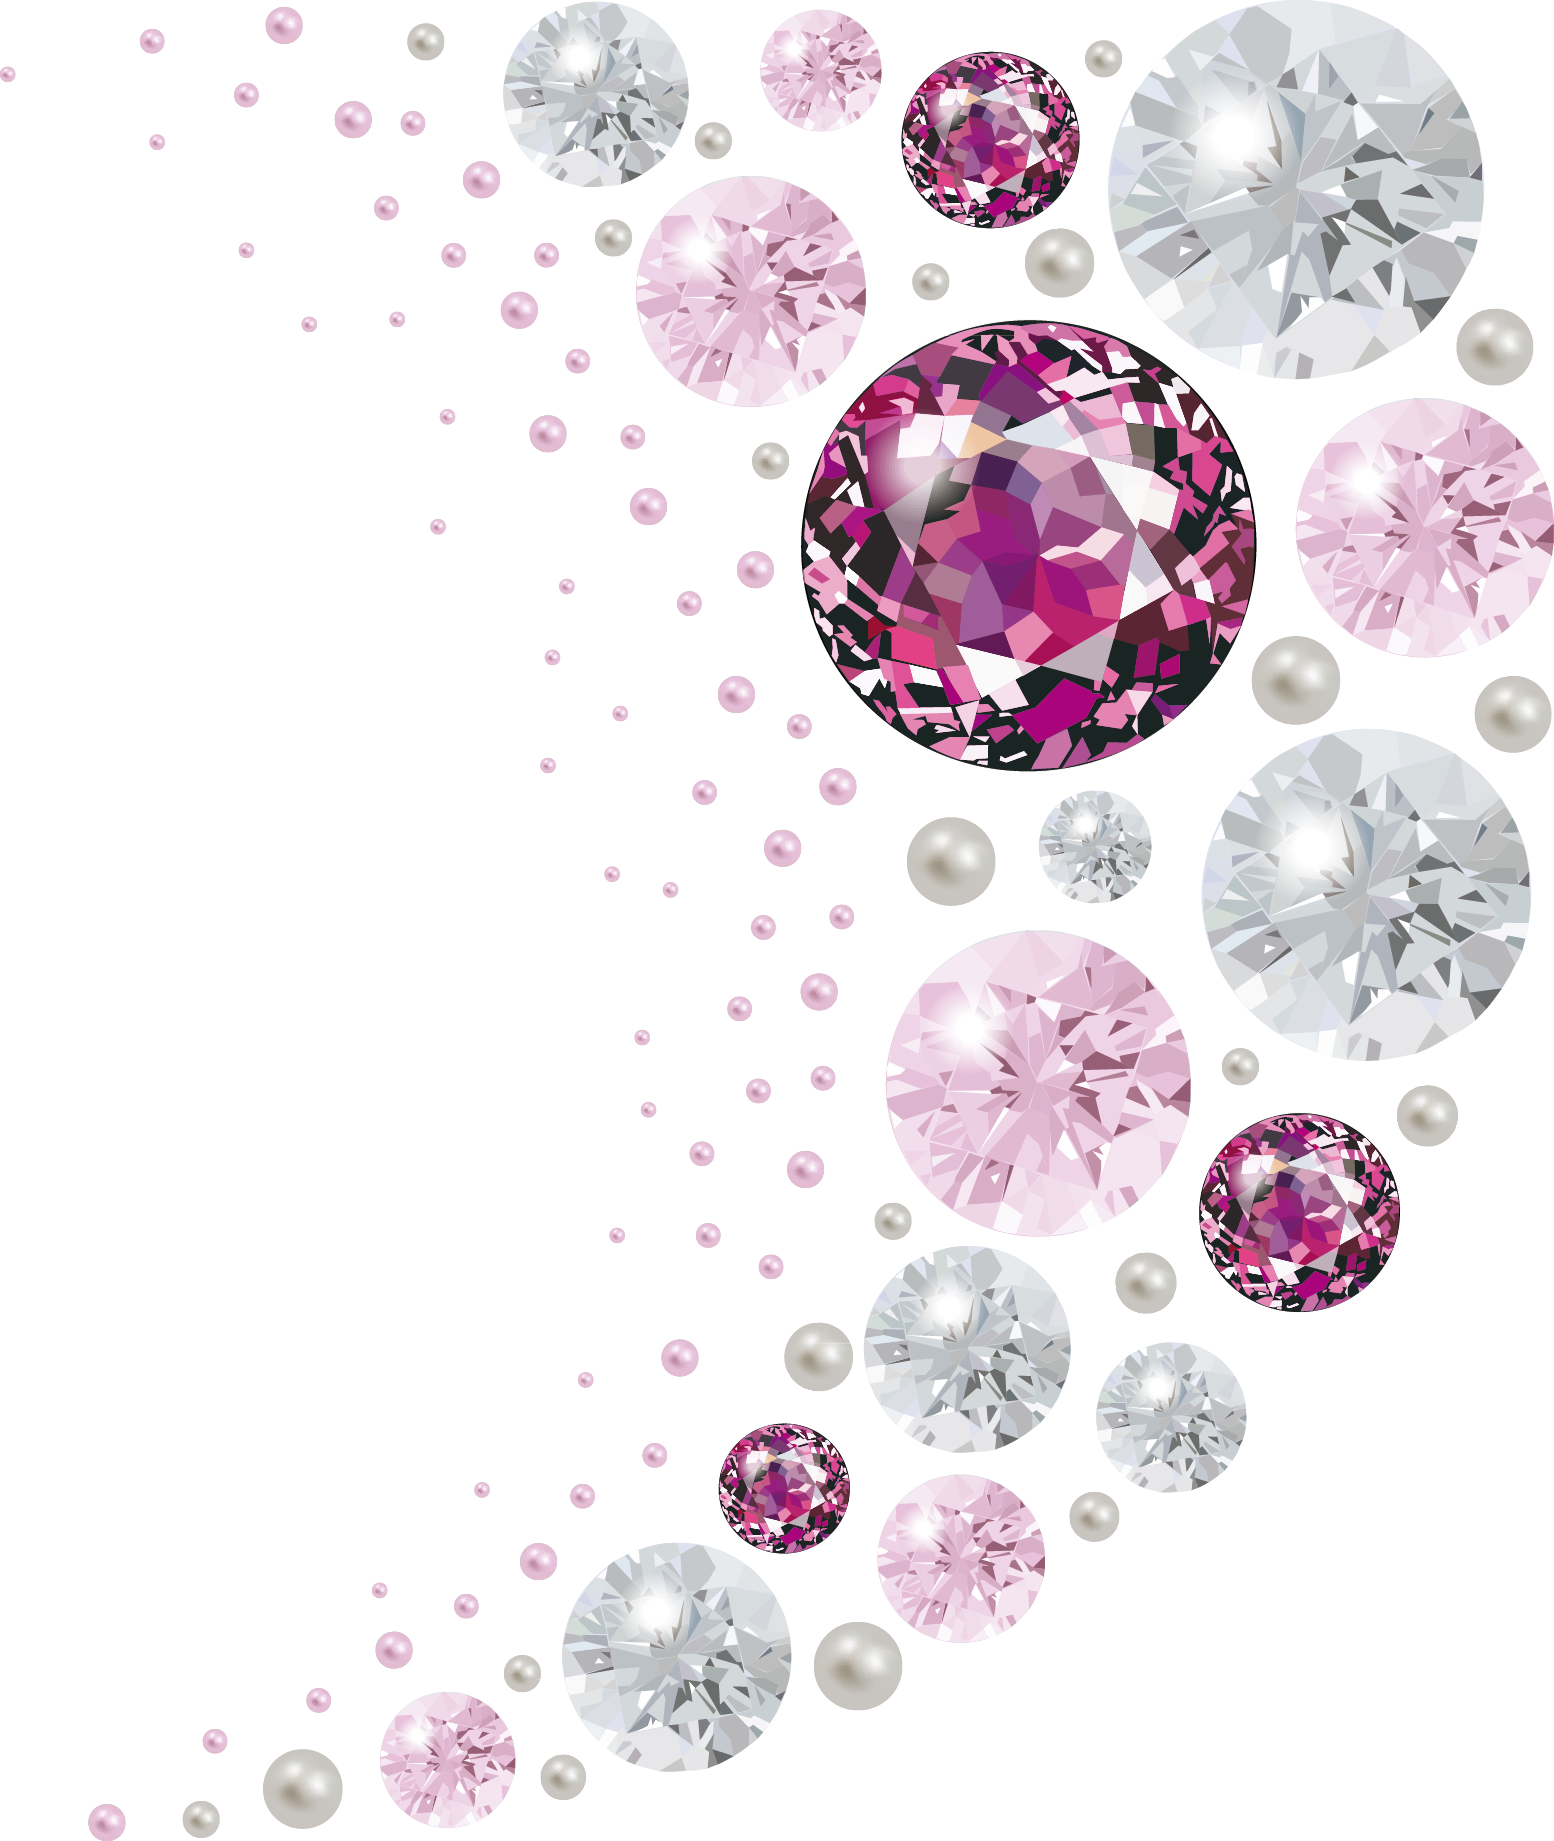 Diamond clipart shading. Download hq image free